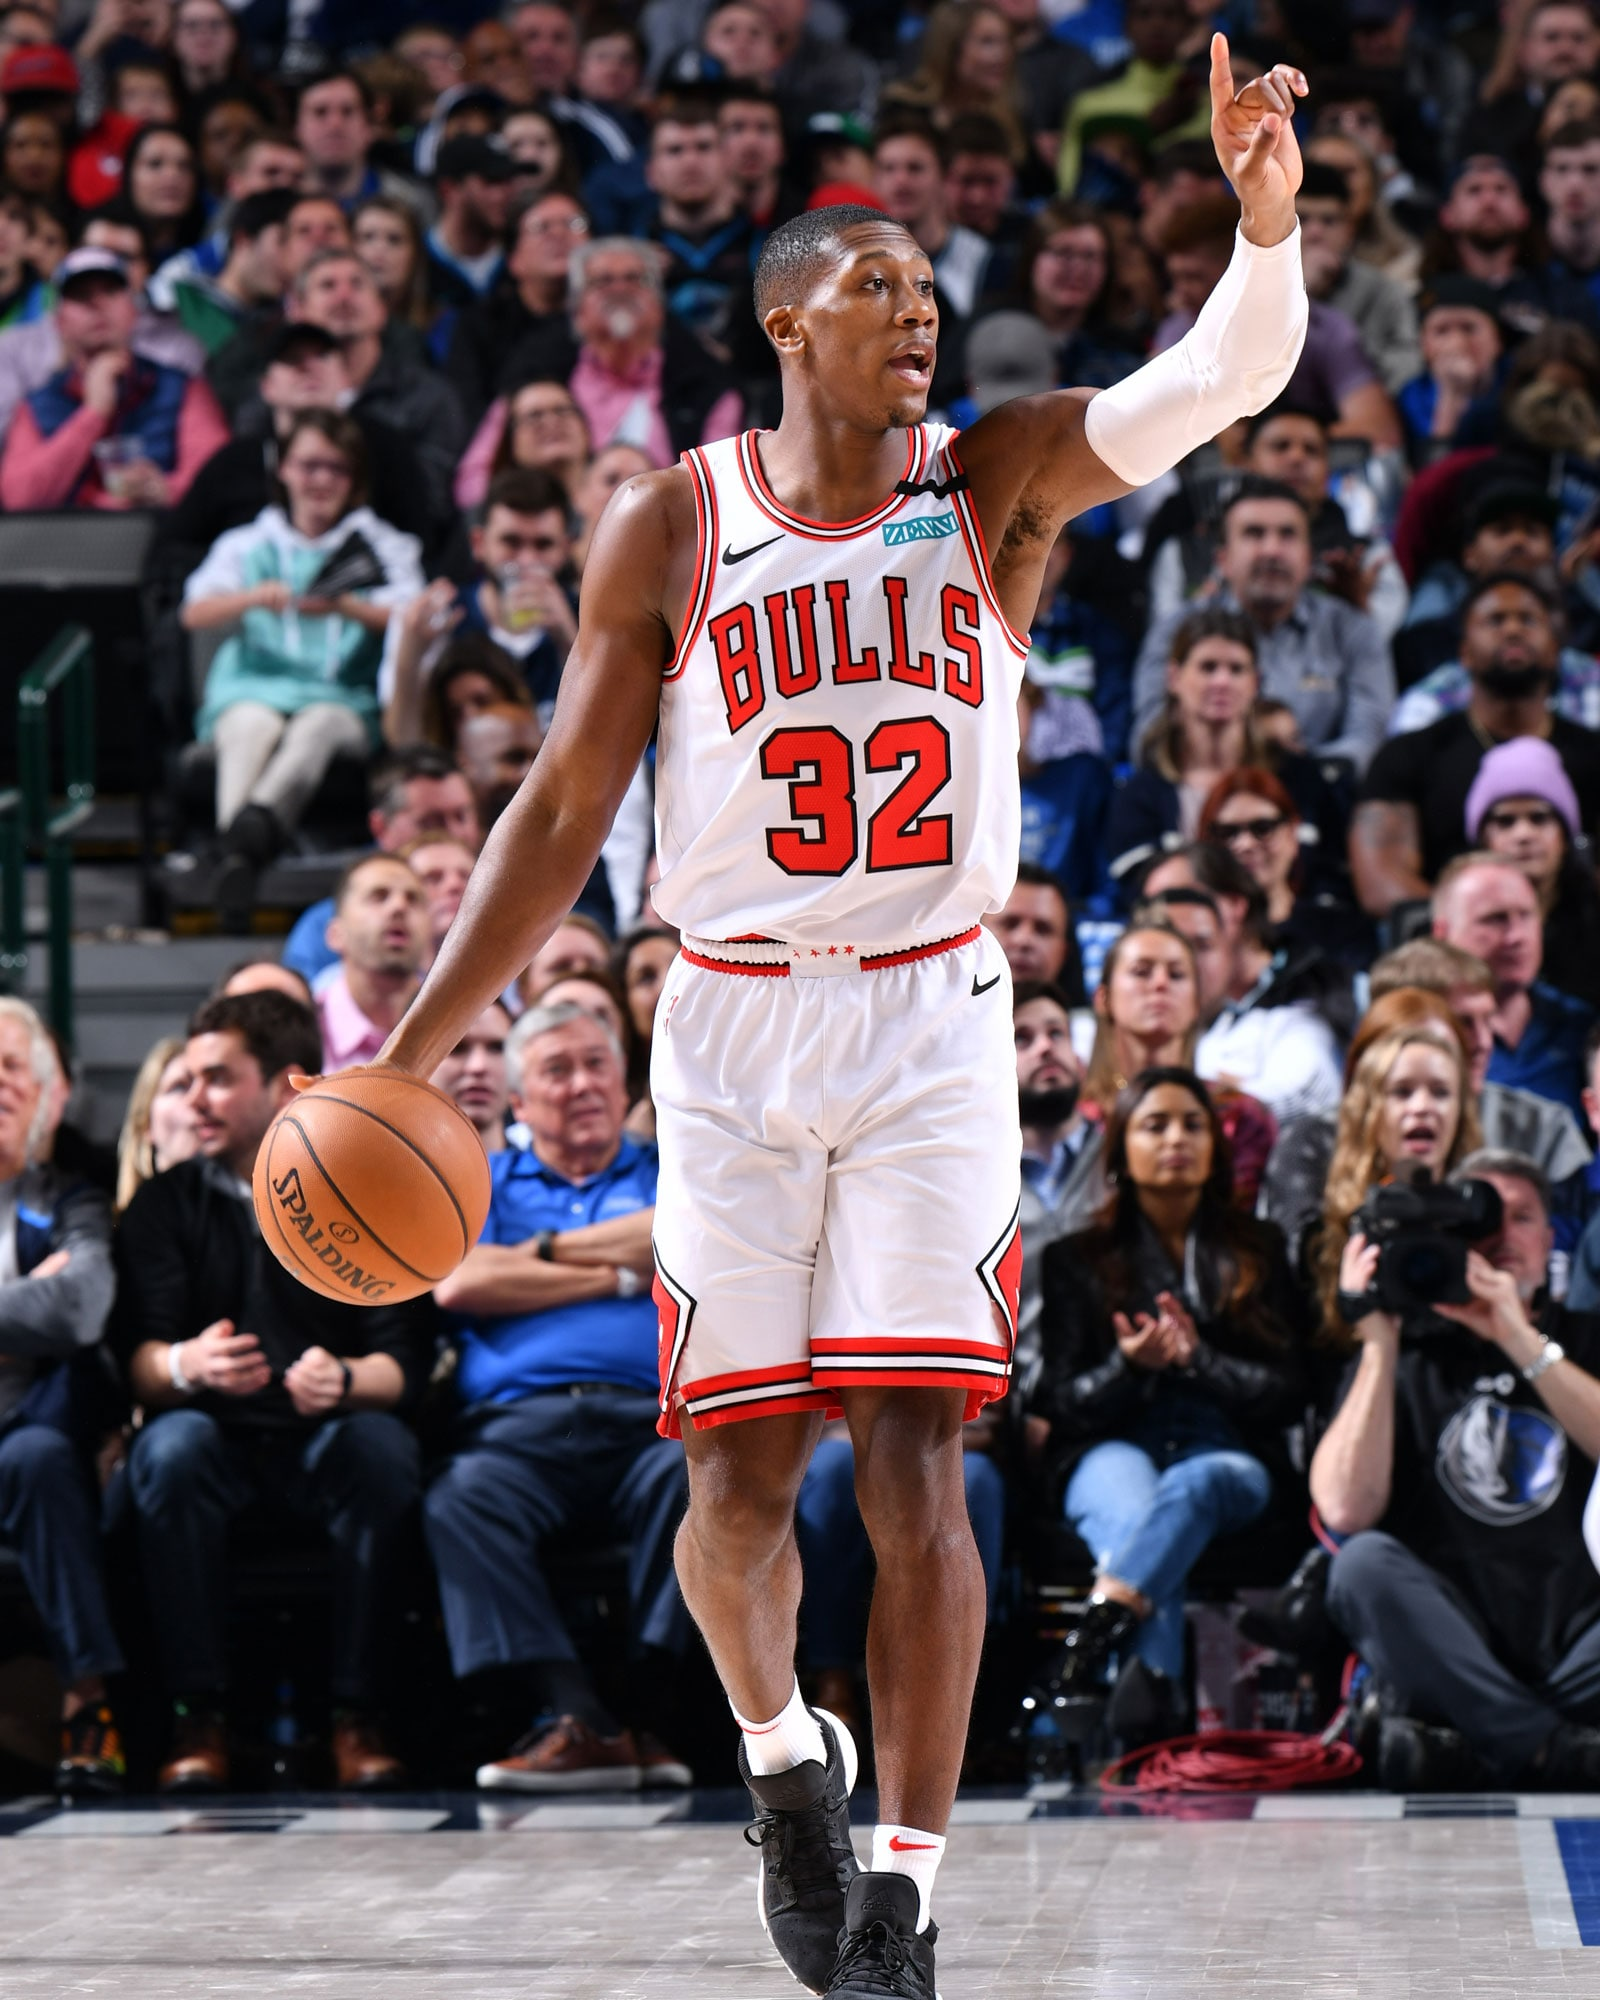 Kris Dunn dribbles the ball against Dallas